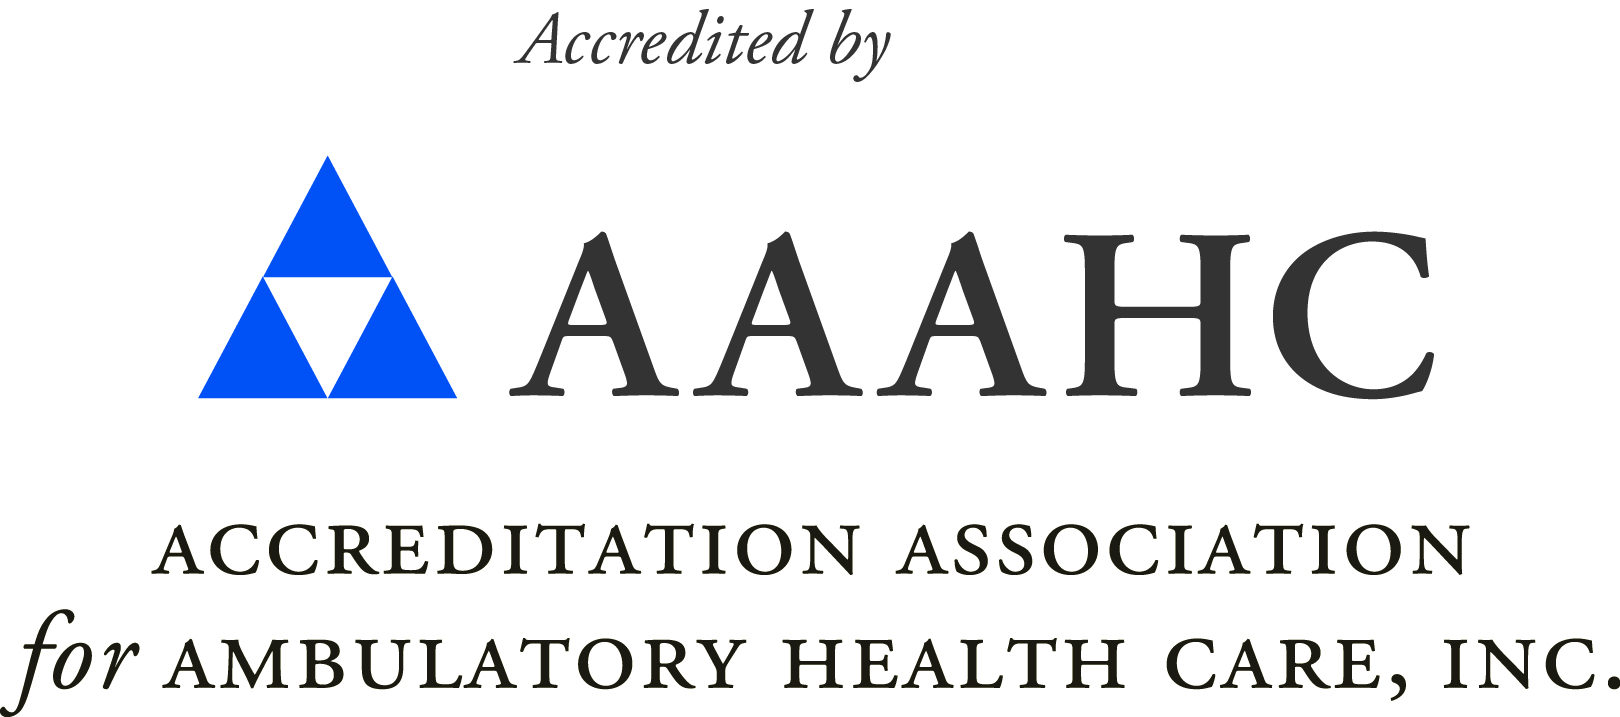 Accredidation Association for Ambulatory Health Care Inc.